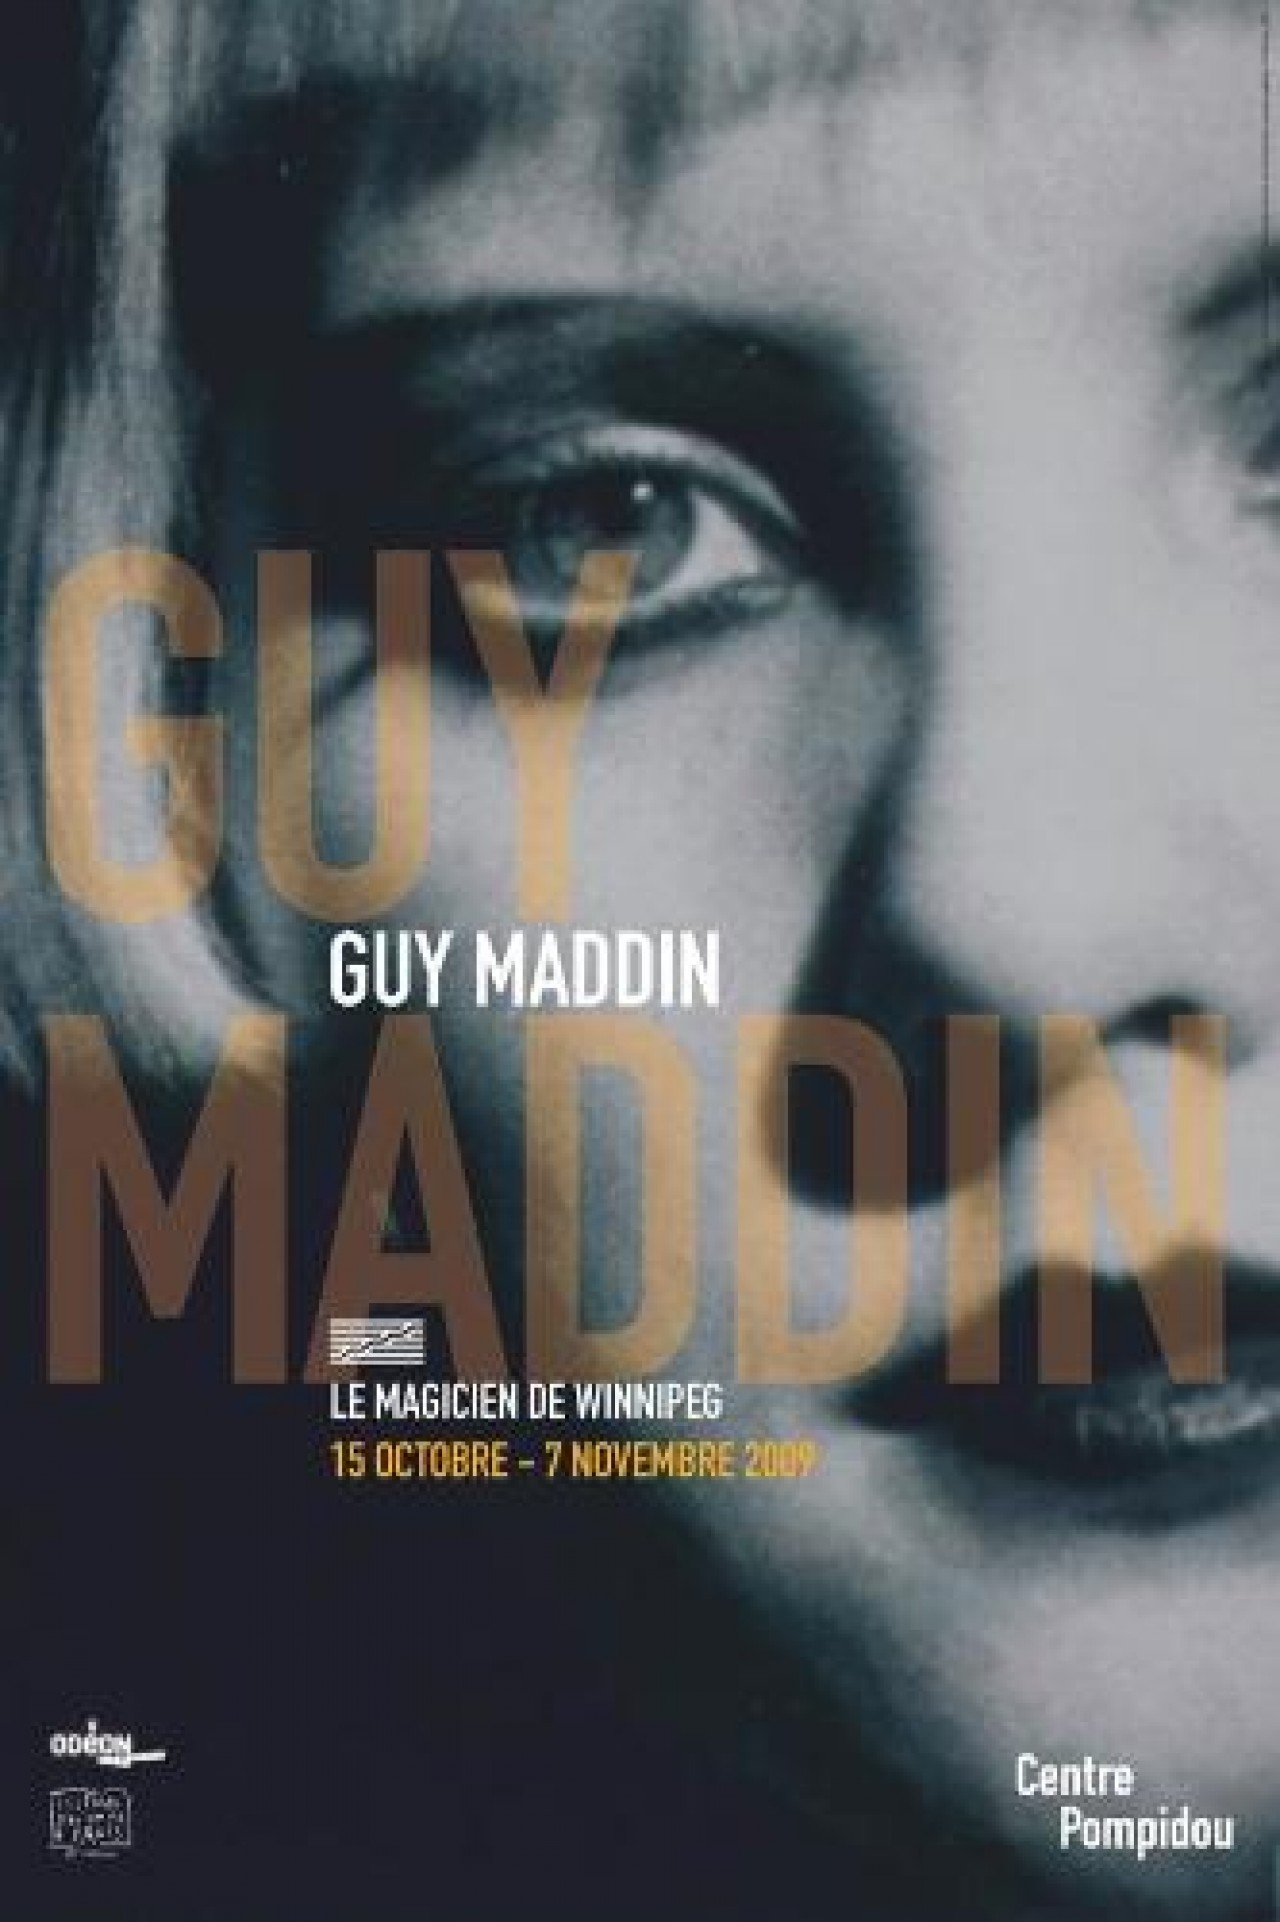 Gone to Pompidou: A Few Questions for Guy Maddin